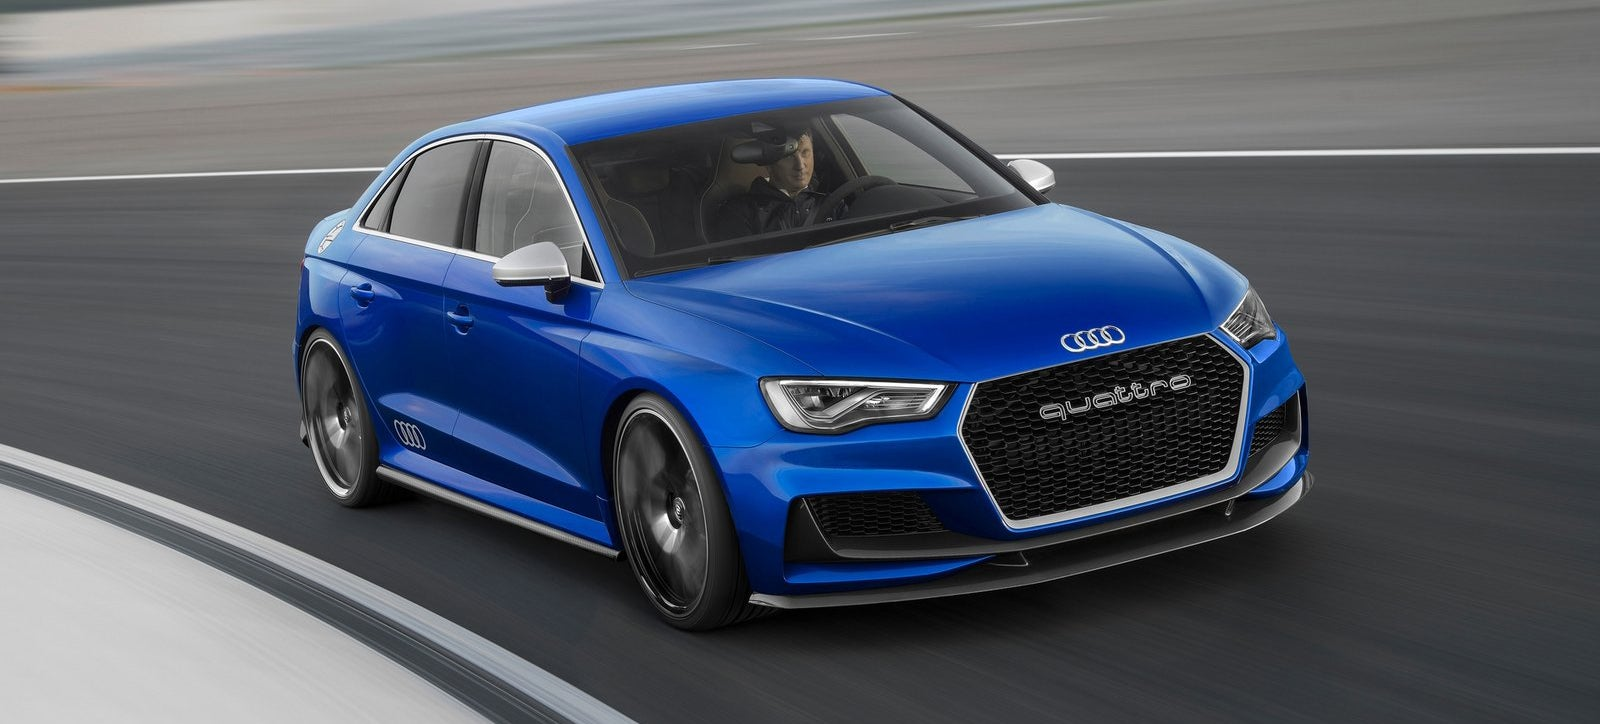 Crazy Turbo Five-Cylinder, At Least 340 HP Confirmed For 2016 Audi RS3